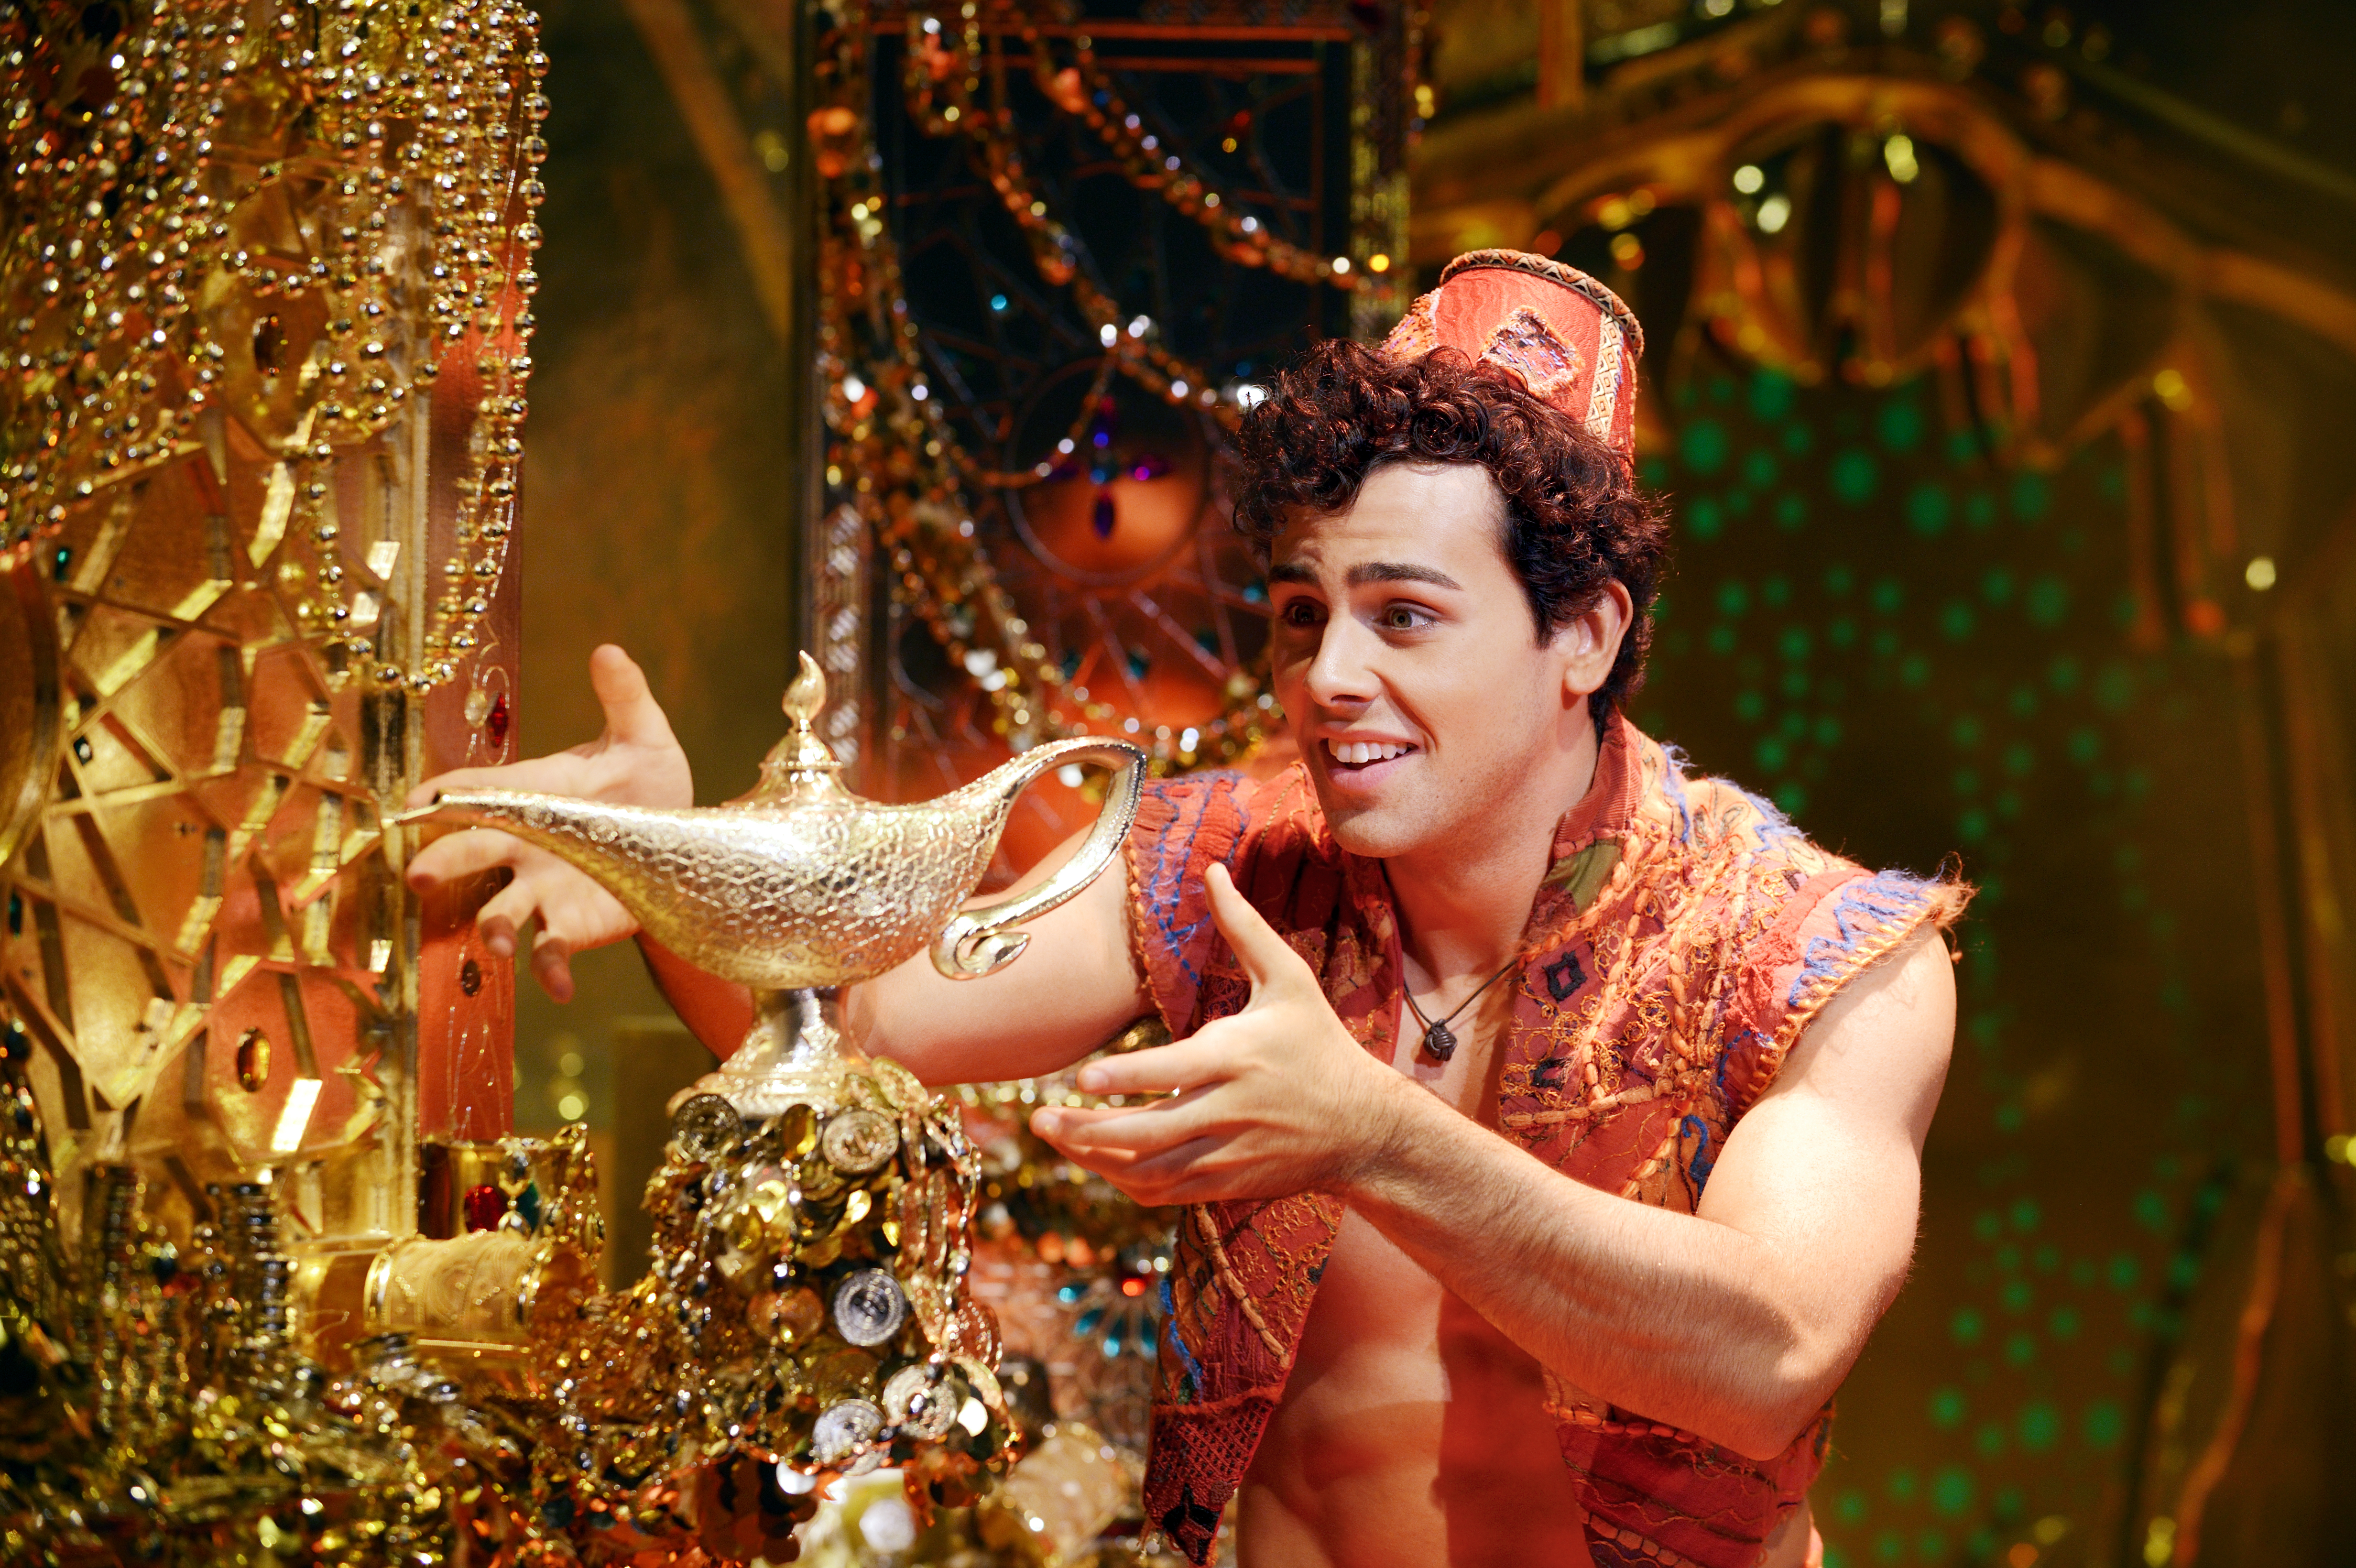 A Whole New World Of Fun With The Genie And Aladdin In The Studio